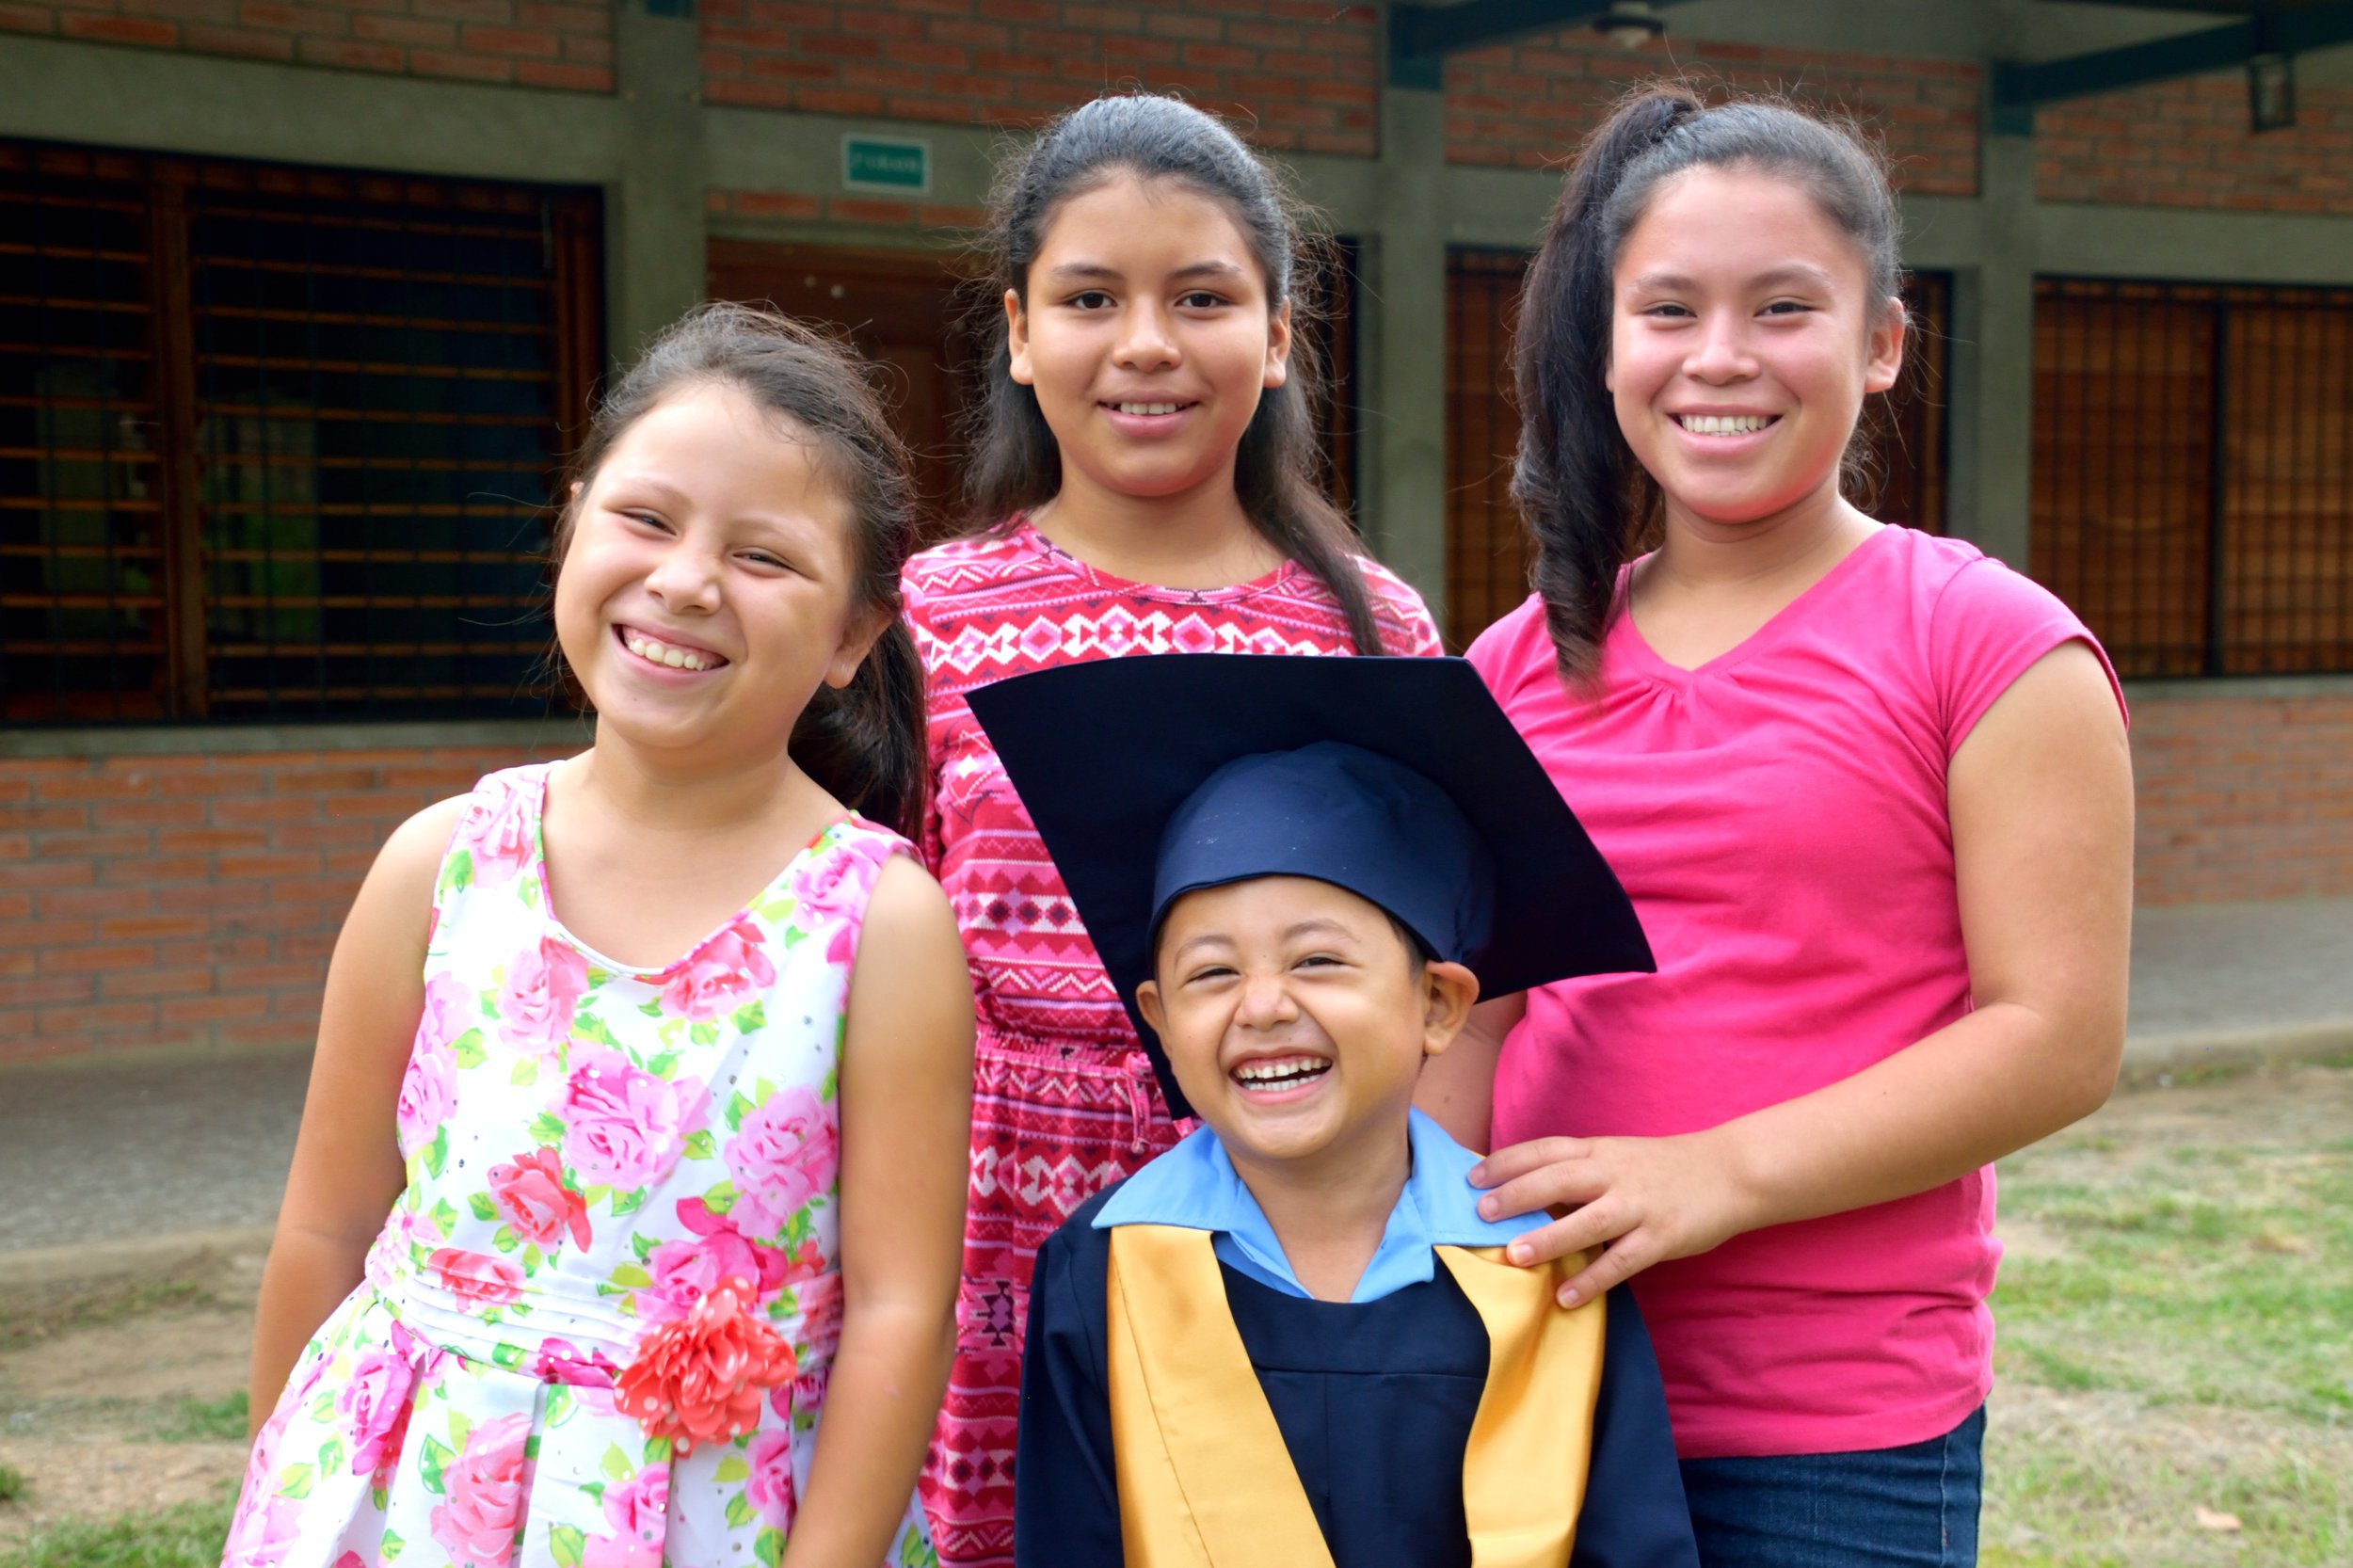 Pictured in the middle, Elisa celebrates her youngest brother's graduation from 'Prepa' (kindergarten) in June of 2017 along with her two sisters.